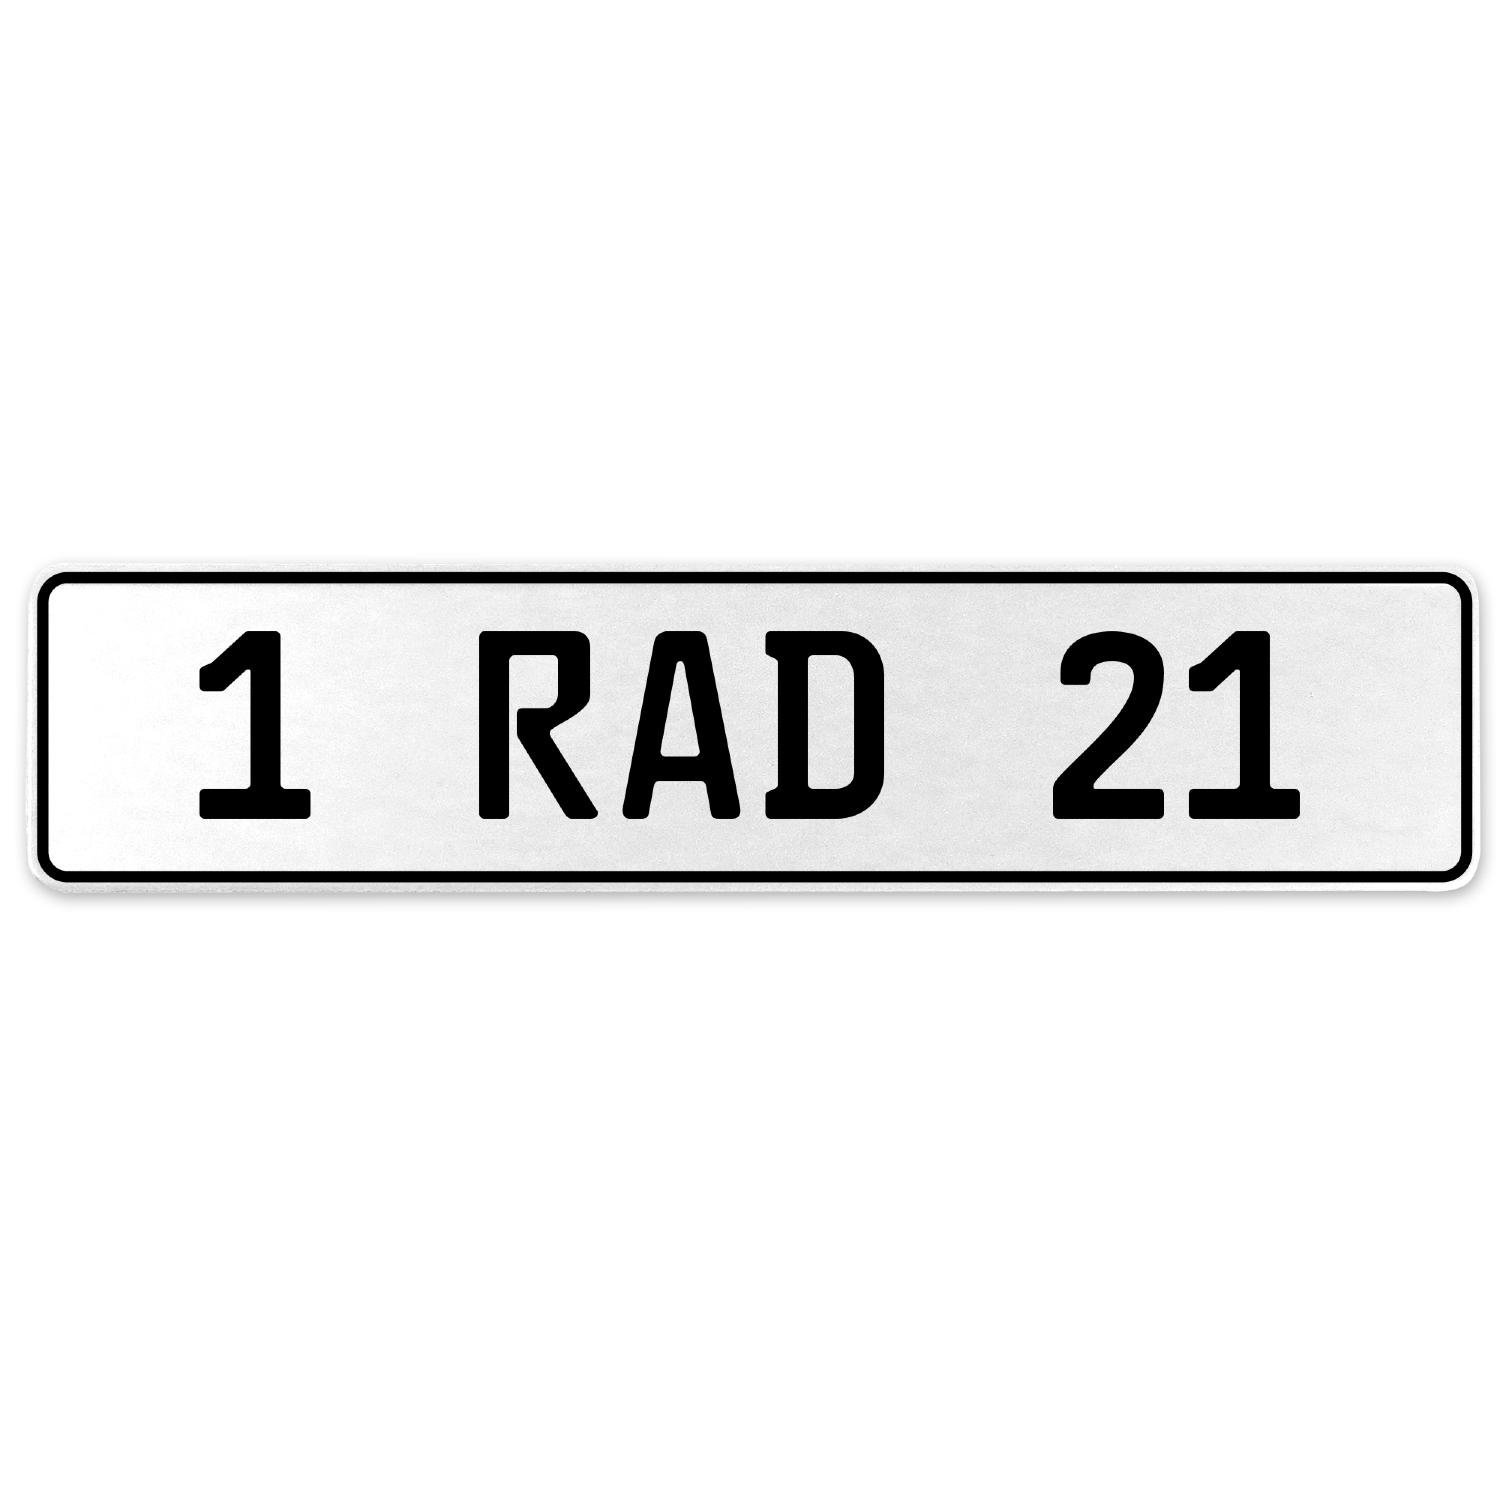 Vintage Parts 554024 1 RAD 21 White Stamped Aluminum European License Plate